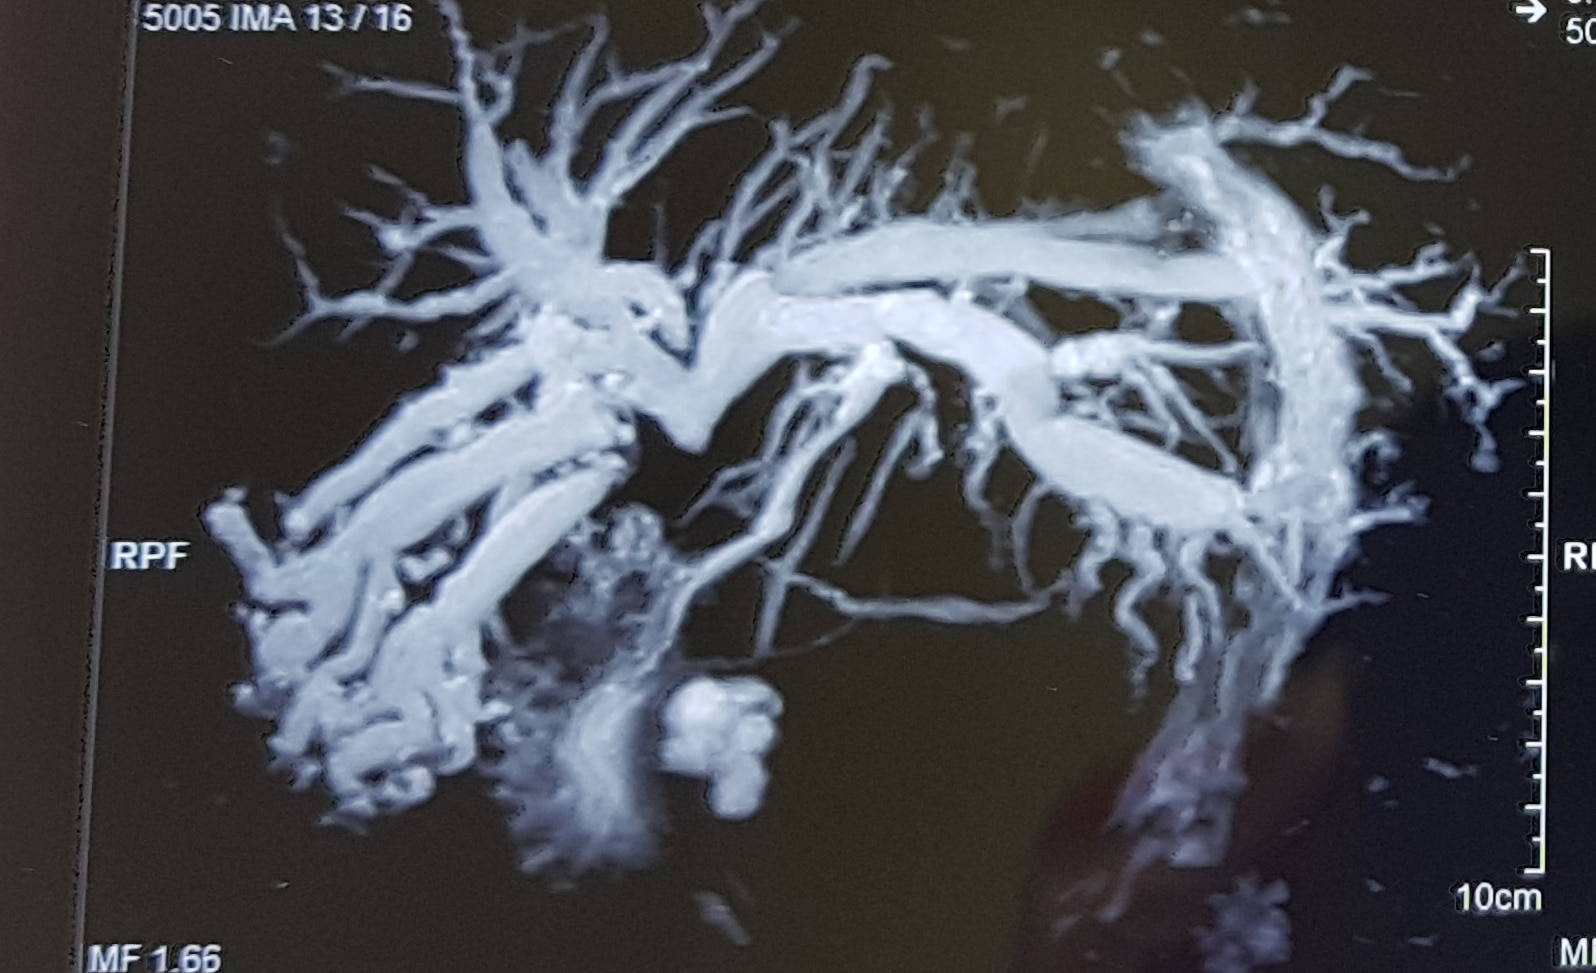 Ercp Triple stenting